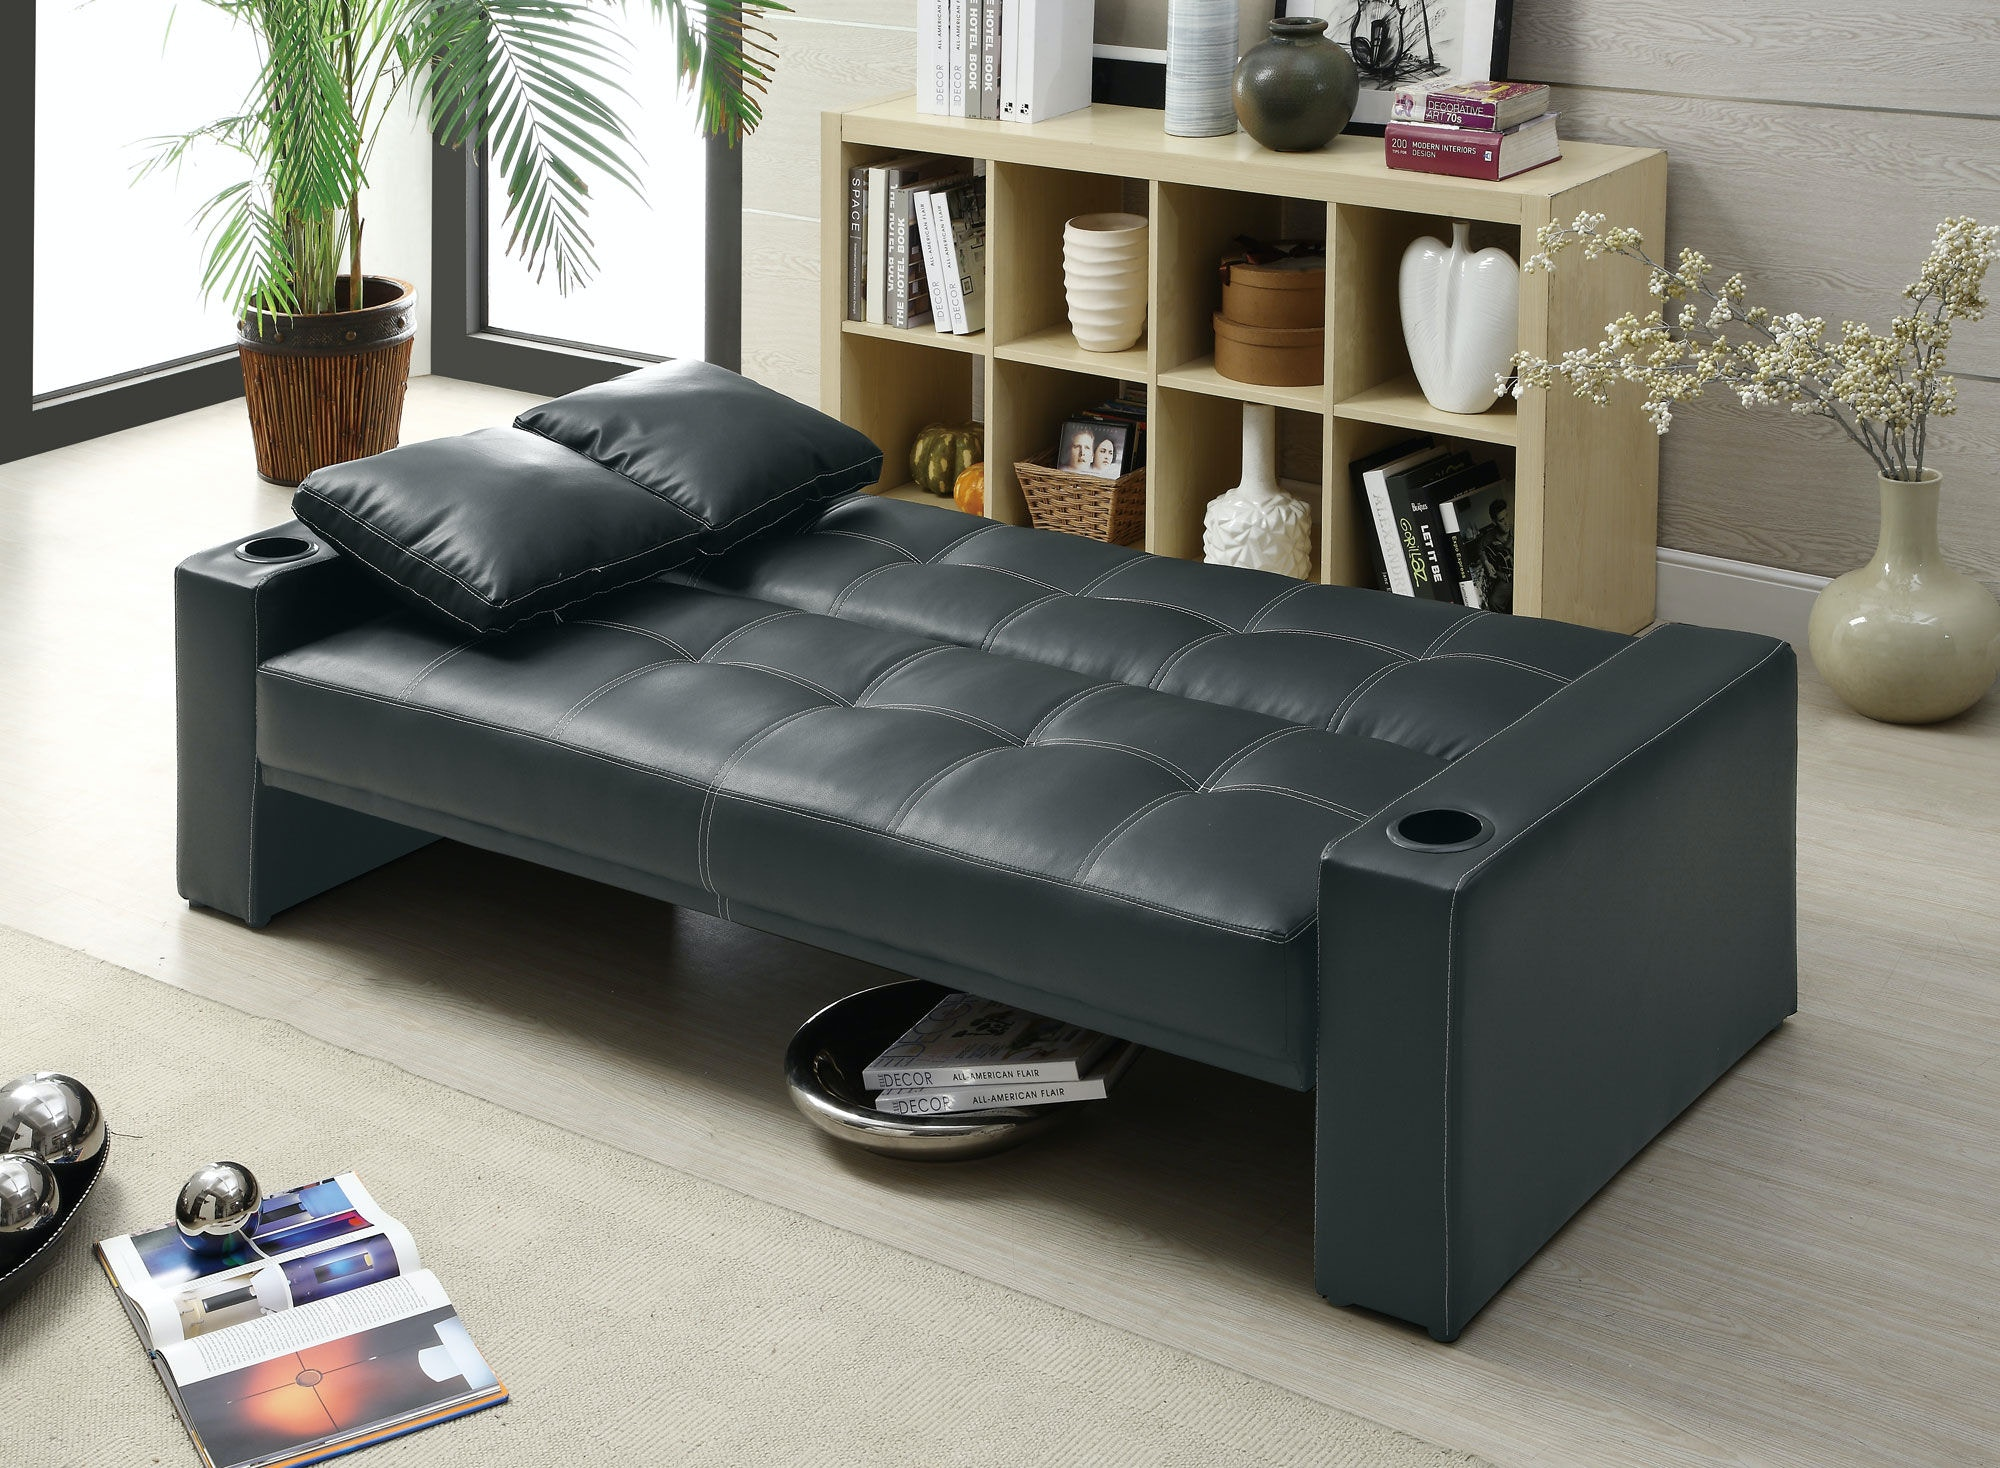 Exellent Fiore Furniture Bed 300125 Fiore Furniture A By Csmonitor And ...